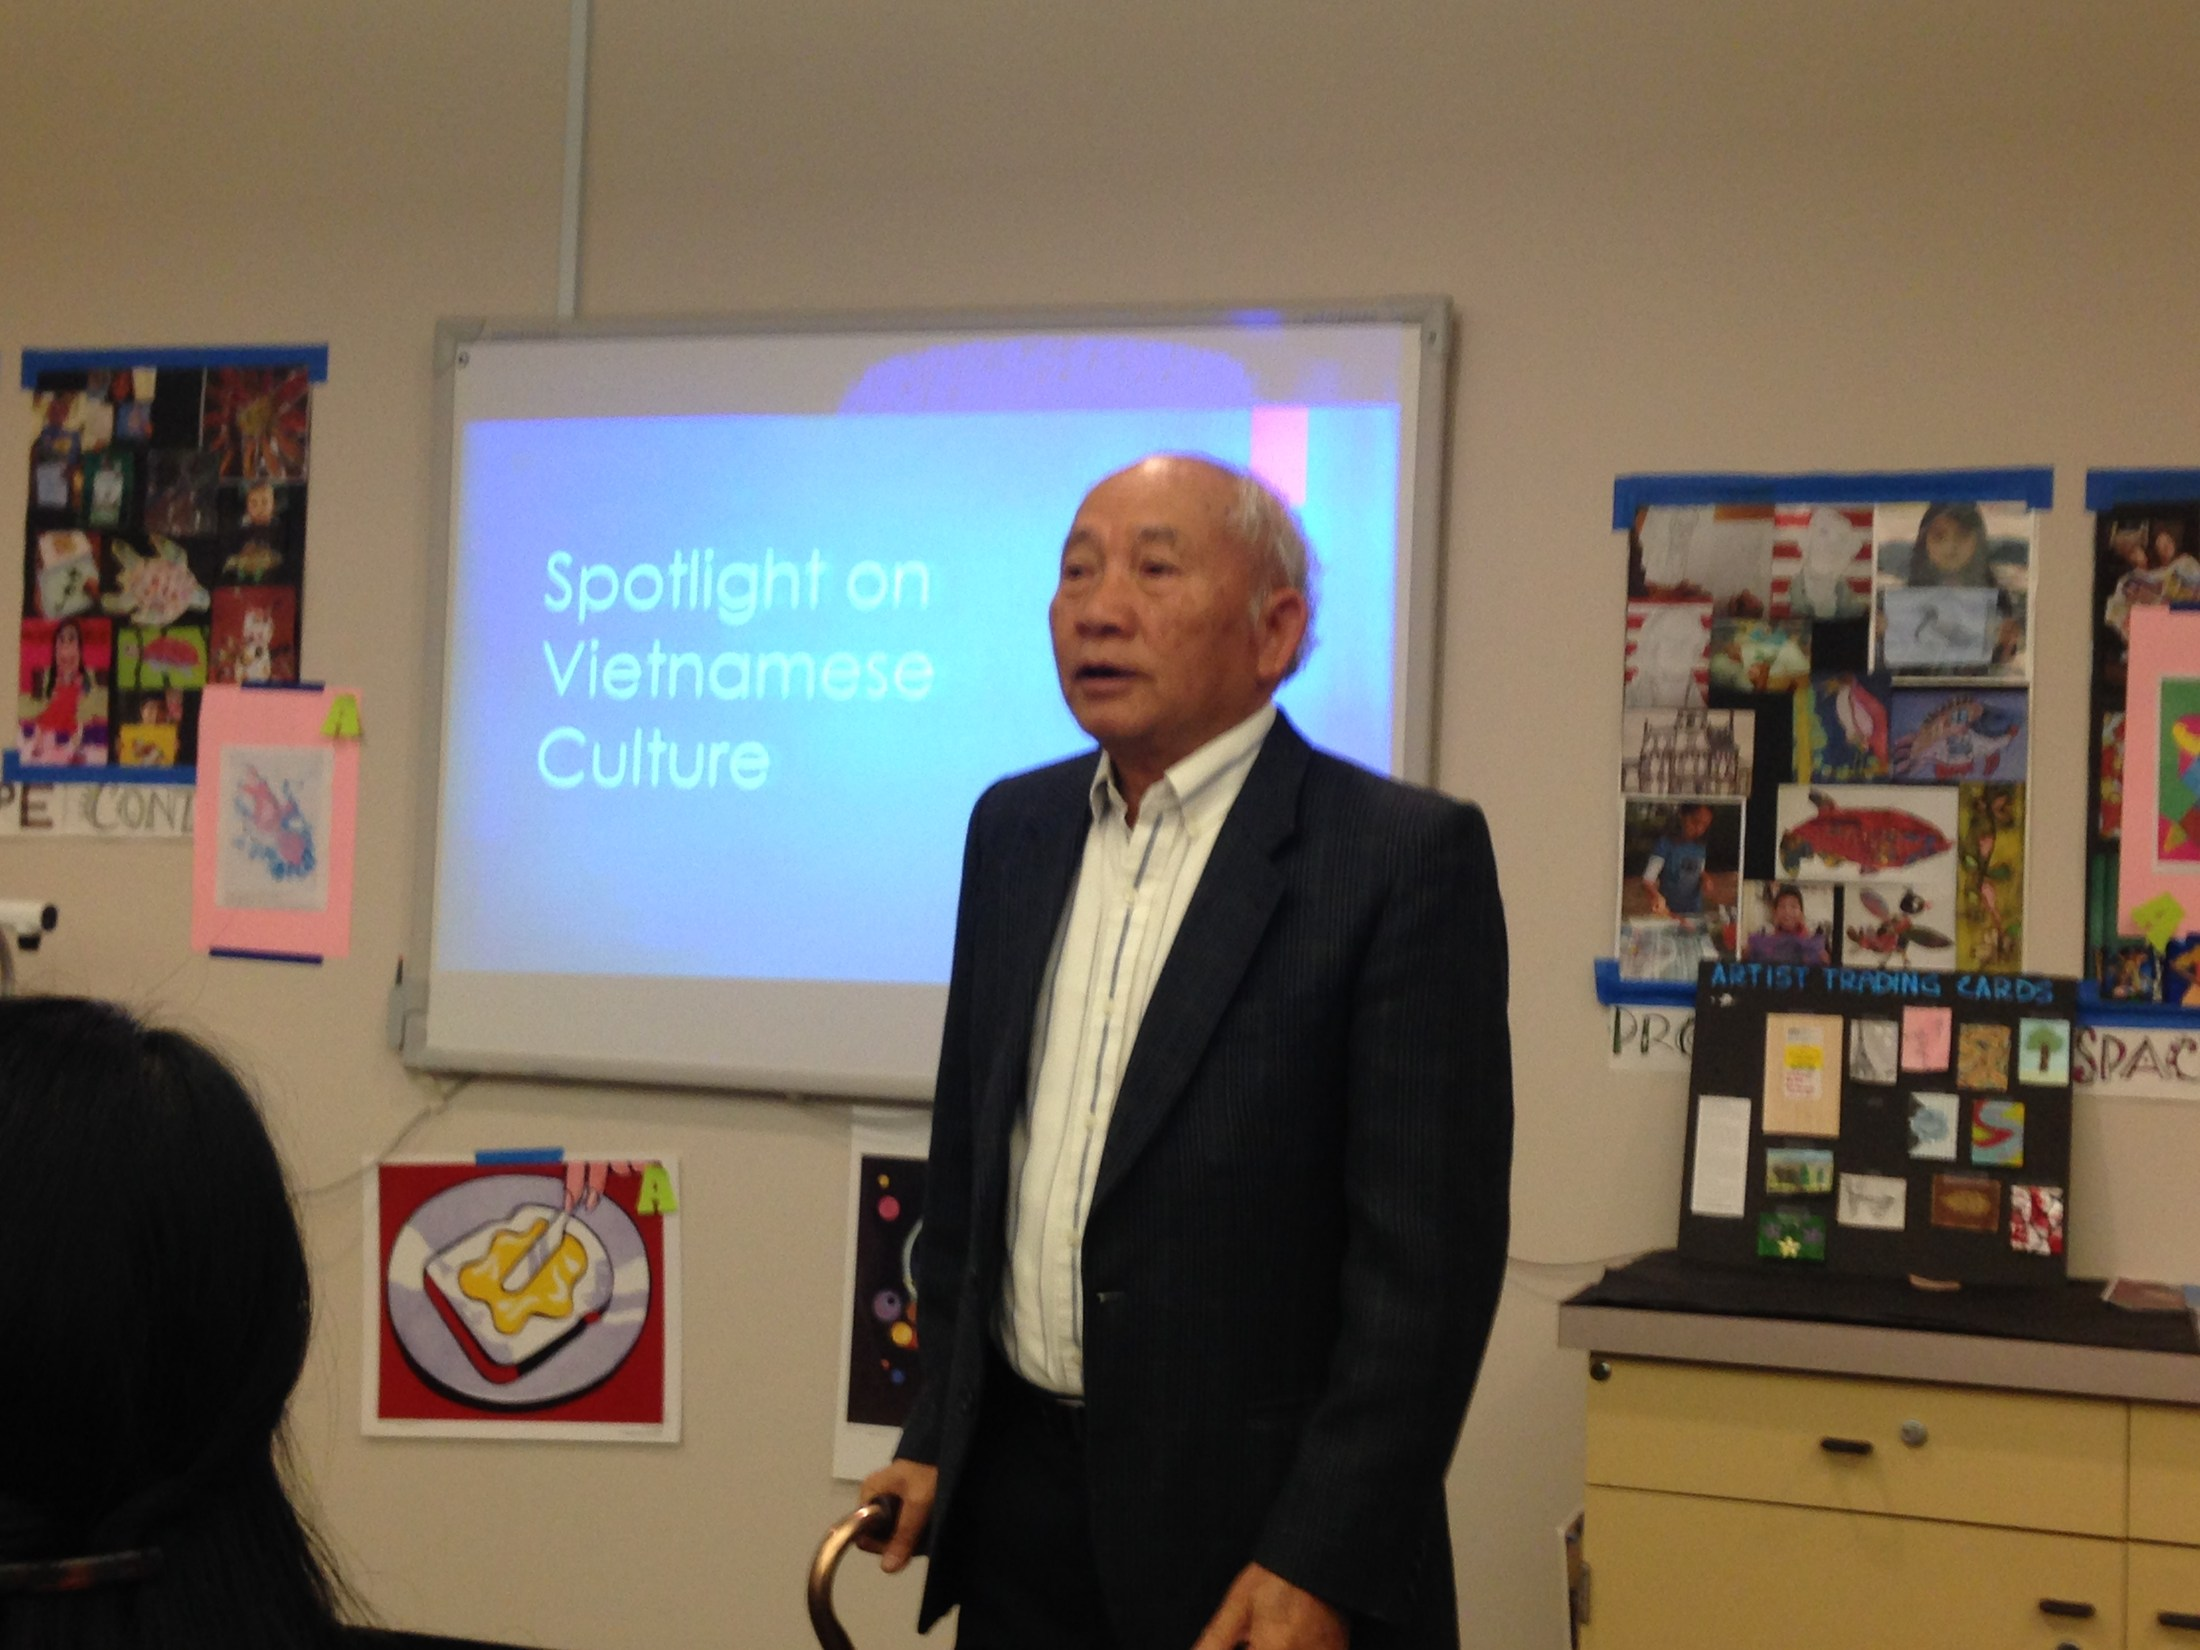 Learning Vietnamese History at CSUF NRCAL